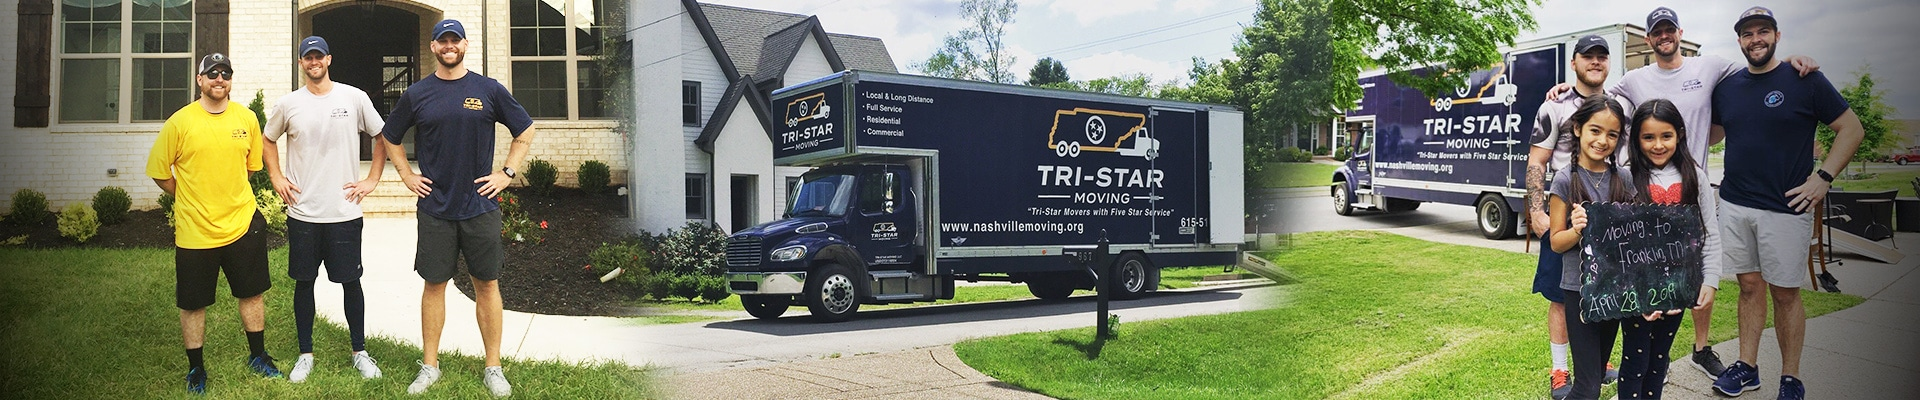 Tri-Star movers and family being moved